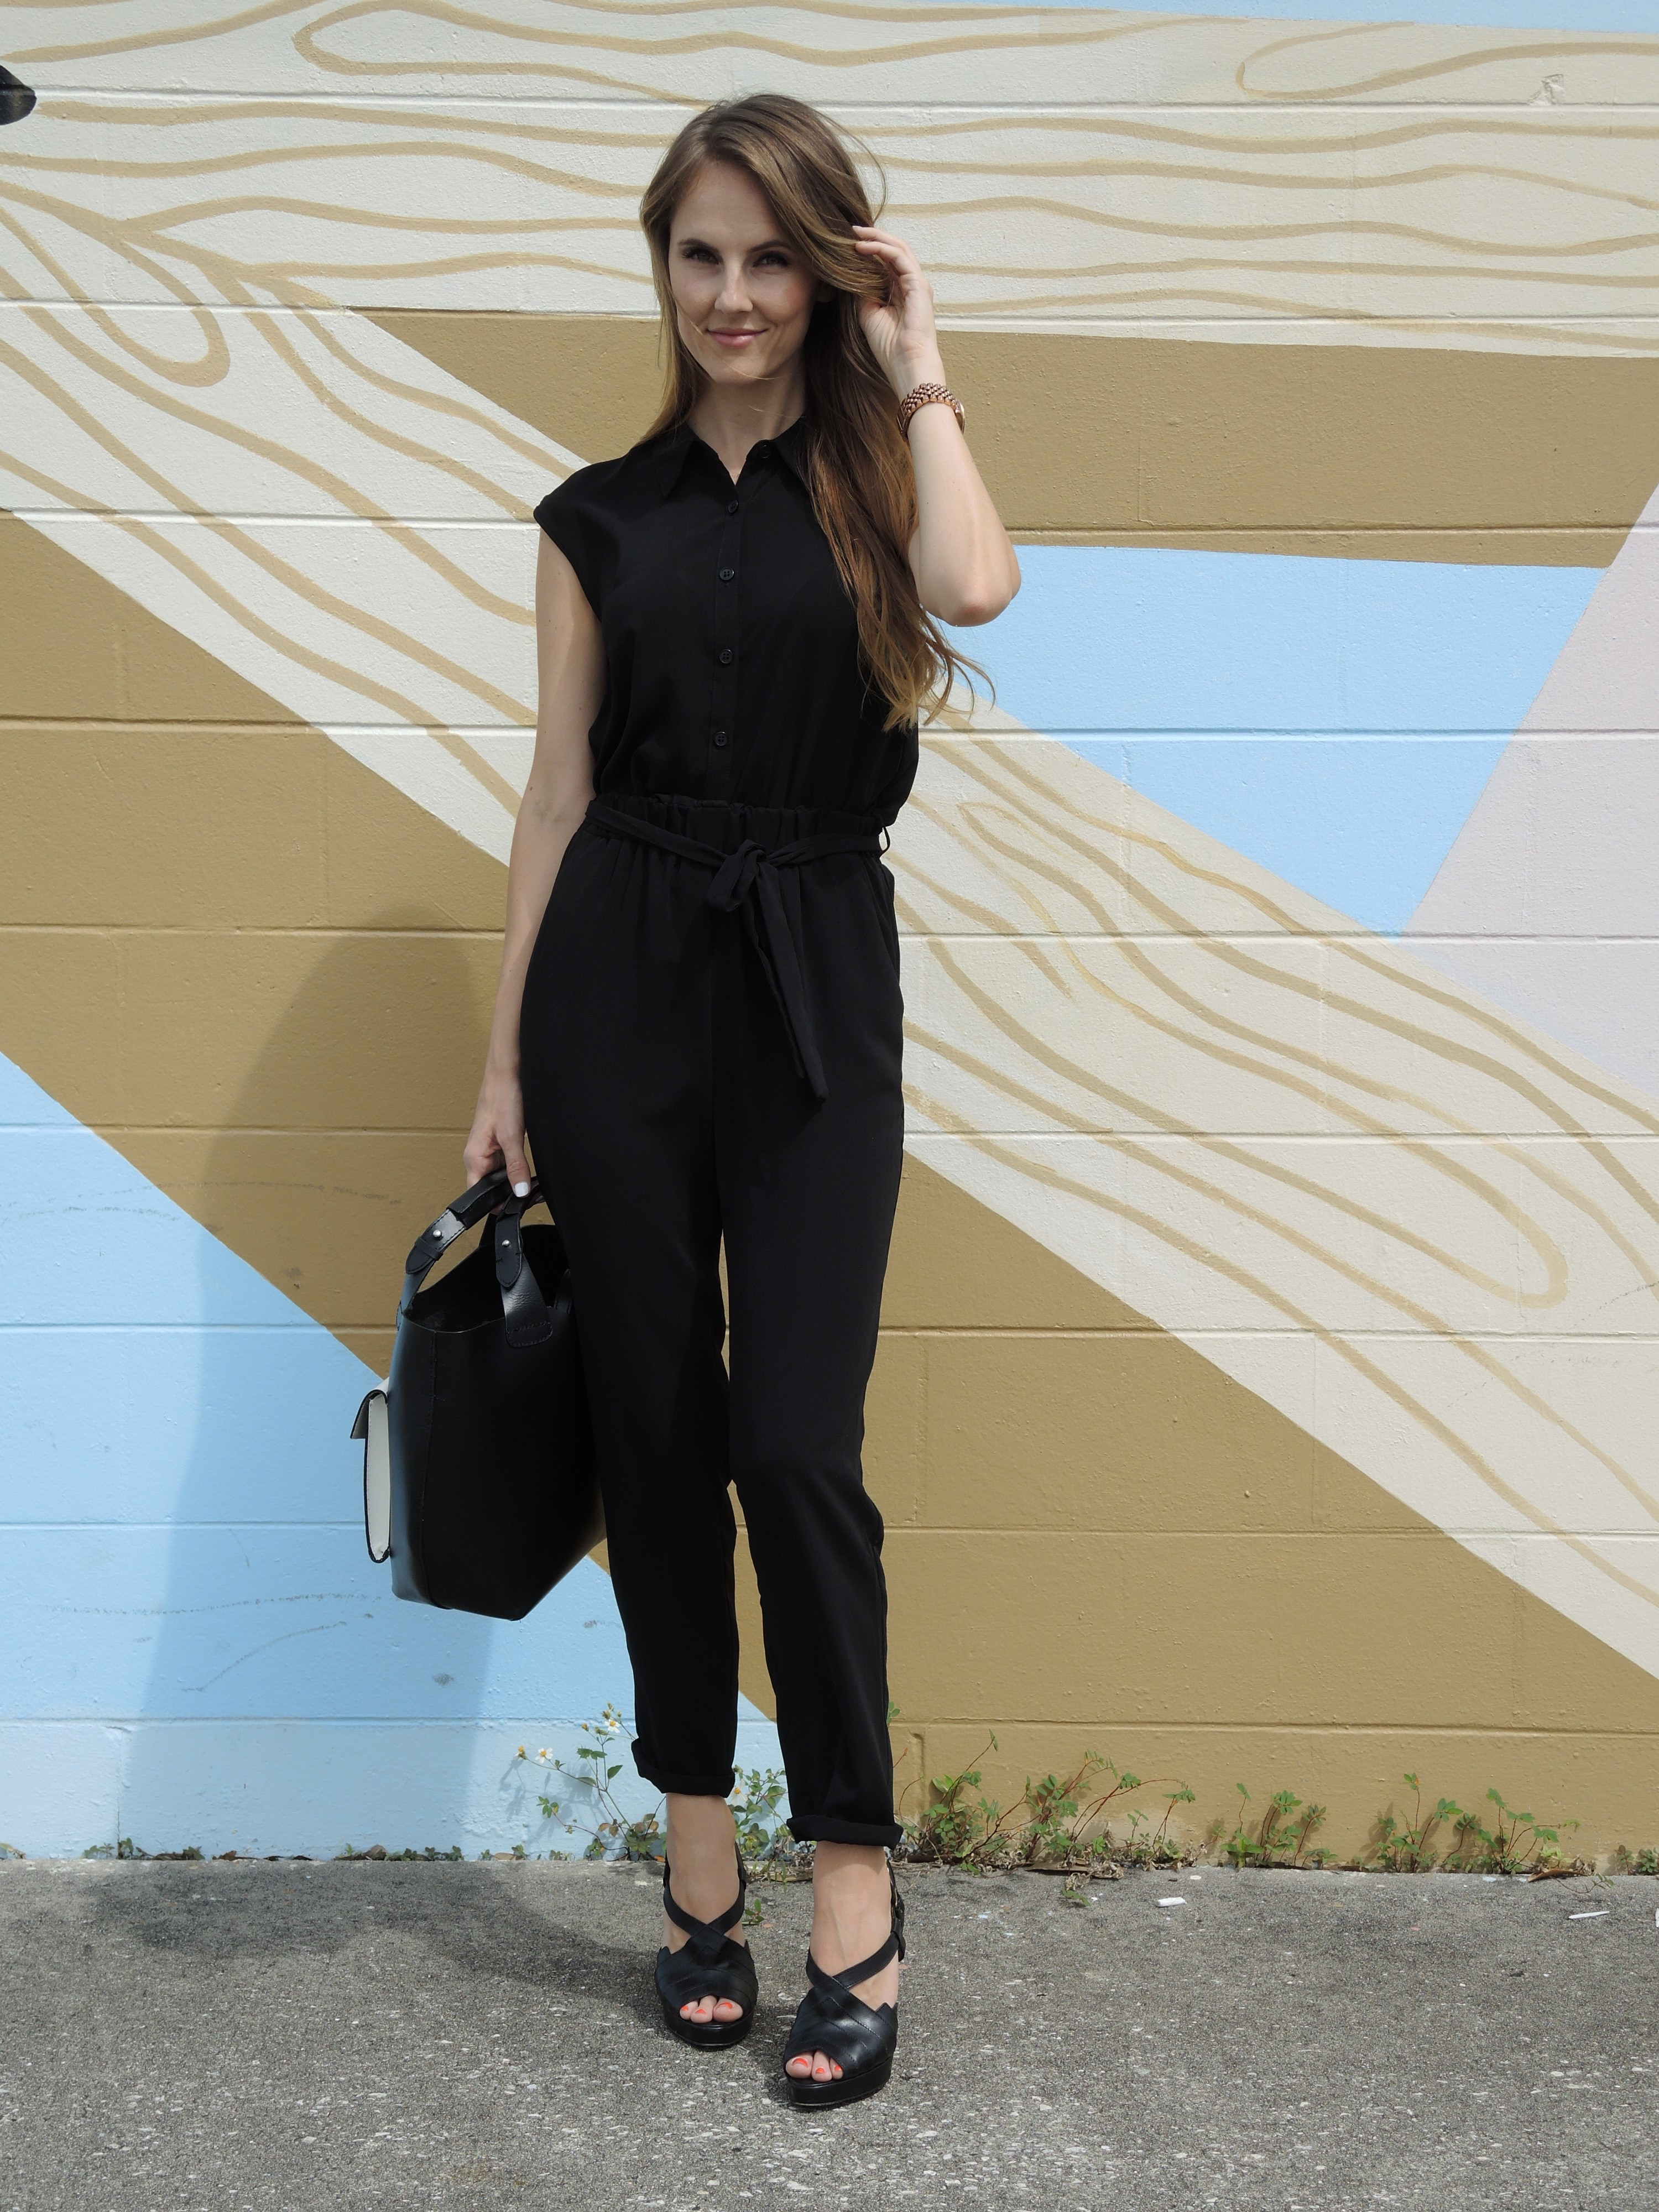 City Girl Black Jumpsuit Louboutin Heels 187 Shikshin